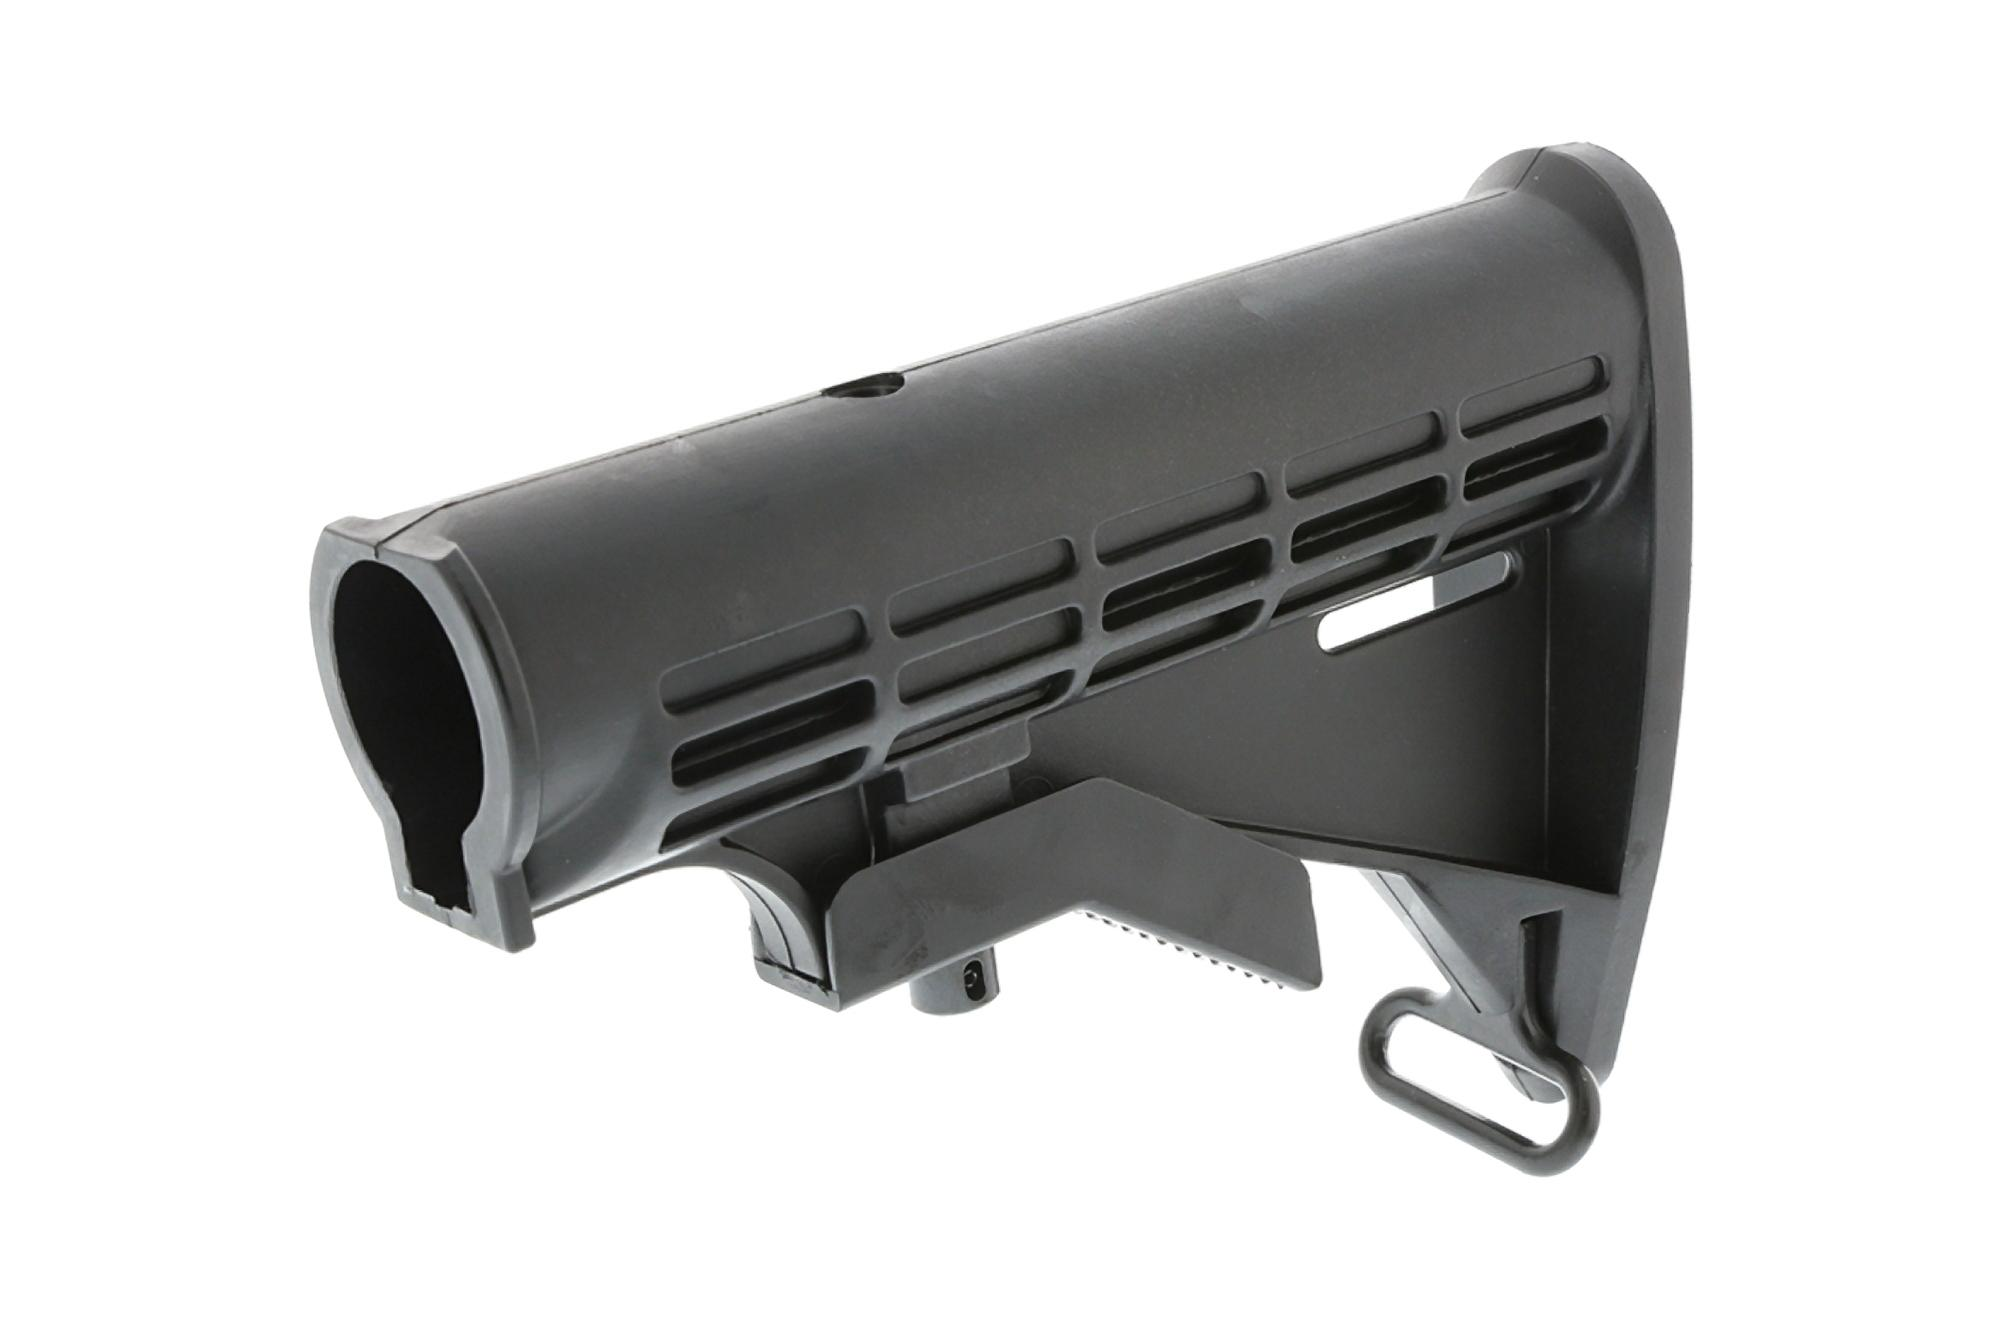 Leapers UTG PRO 6-Position Mil-Spec Stock Assembly